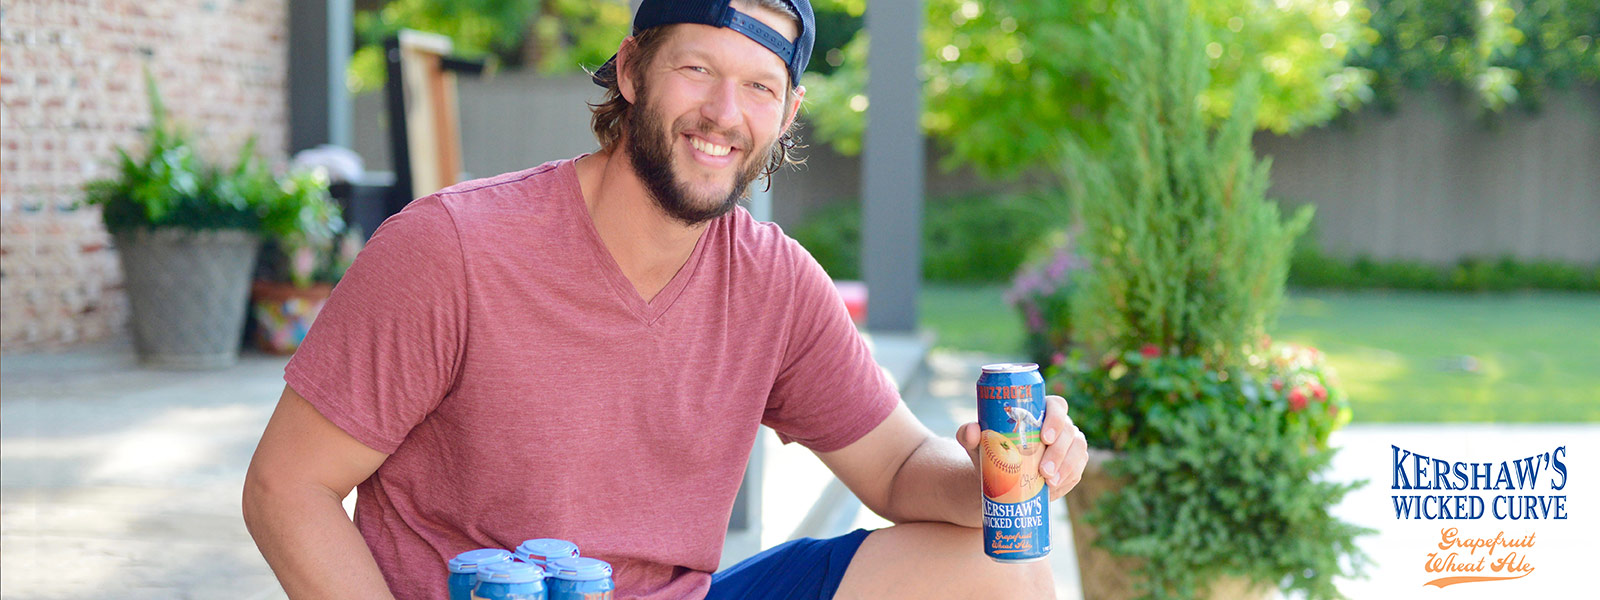 Clayton Kershaw with Kershaw's Wicked Curve Grapefruit Wheat Ale